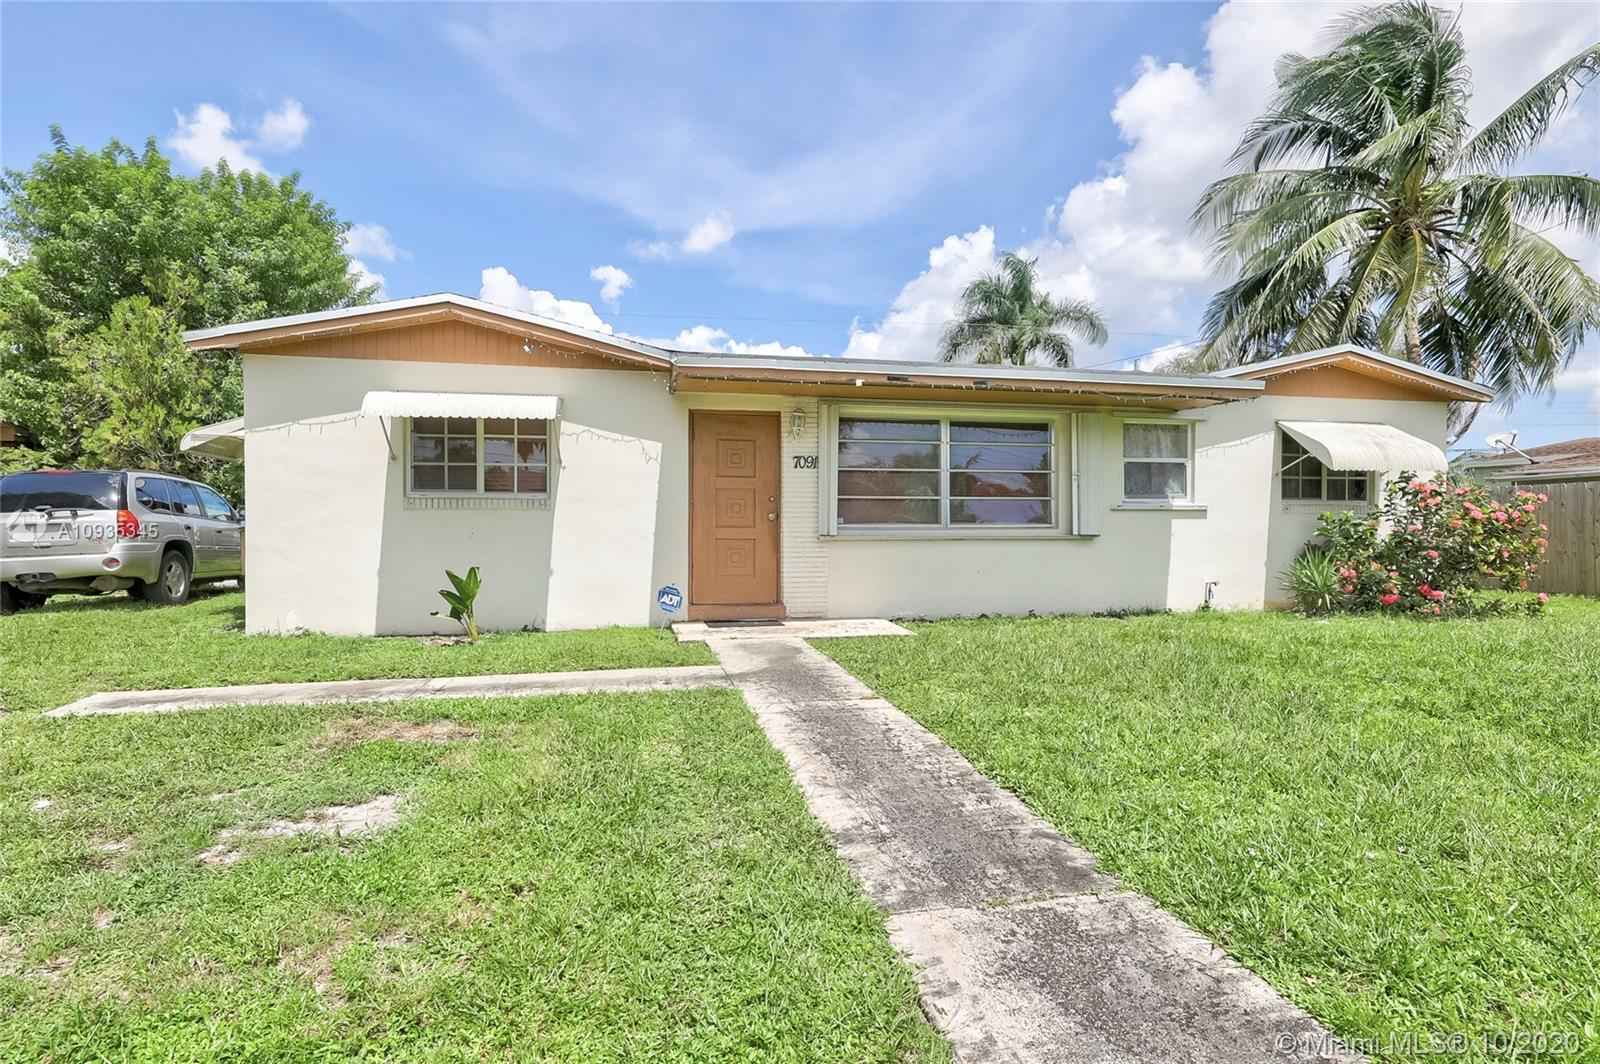 Great buy!!Don't miss this opportunity to own this amazing 4 bedrooms/2 bathrooms home with huge bac